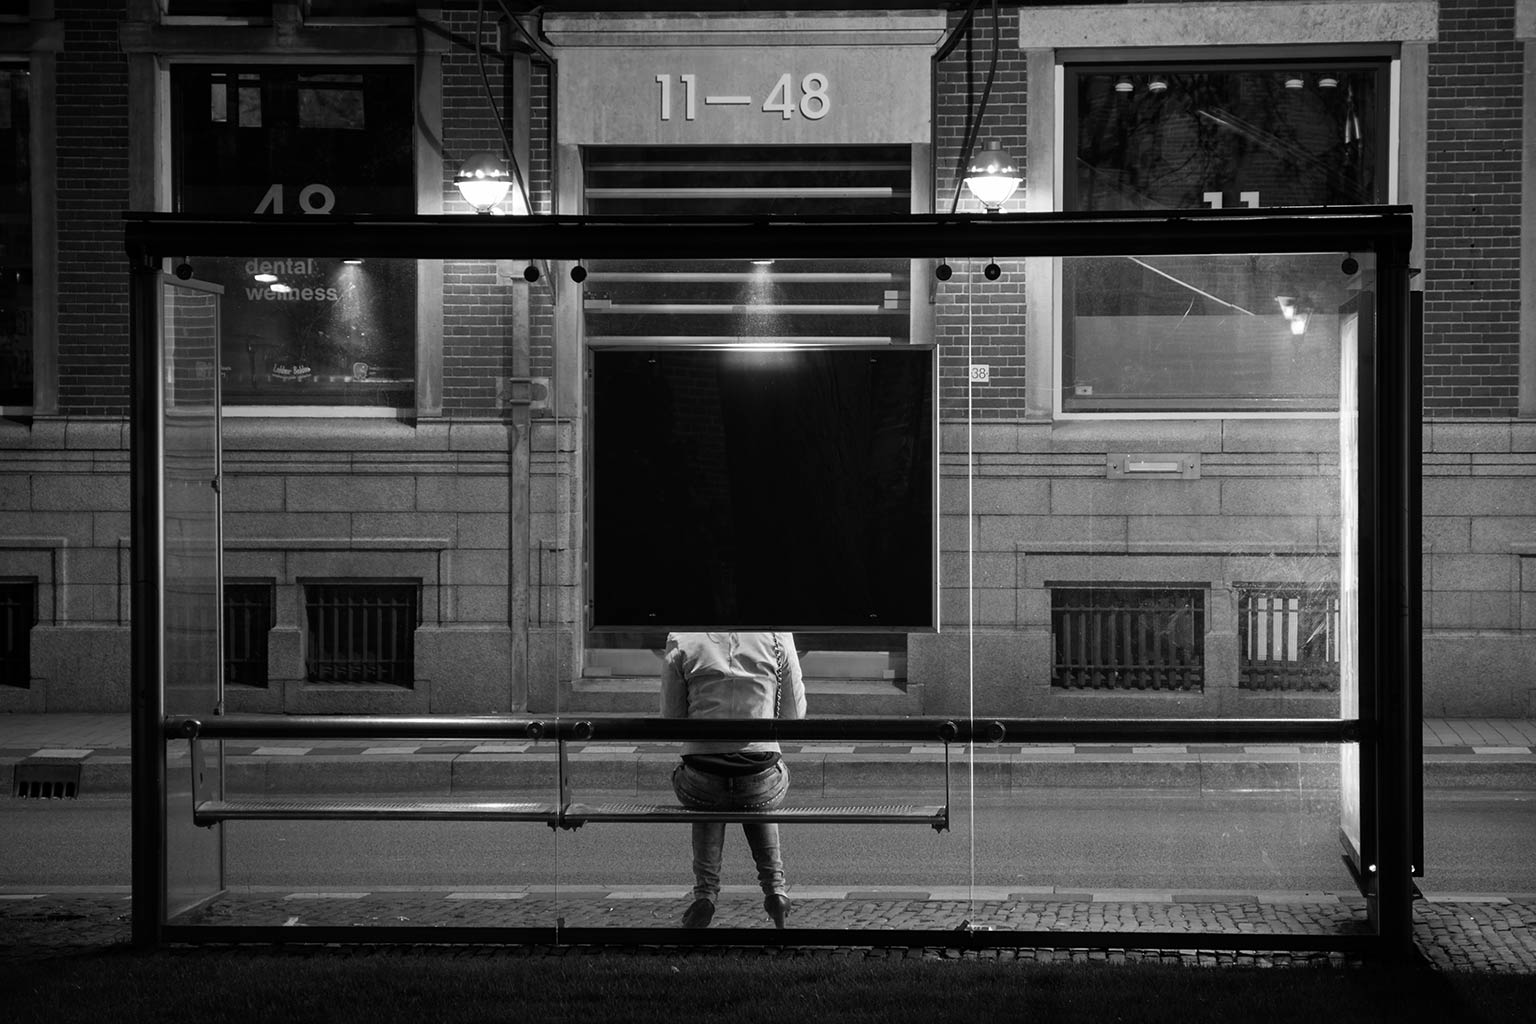 woman sitting alone at bus stop